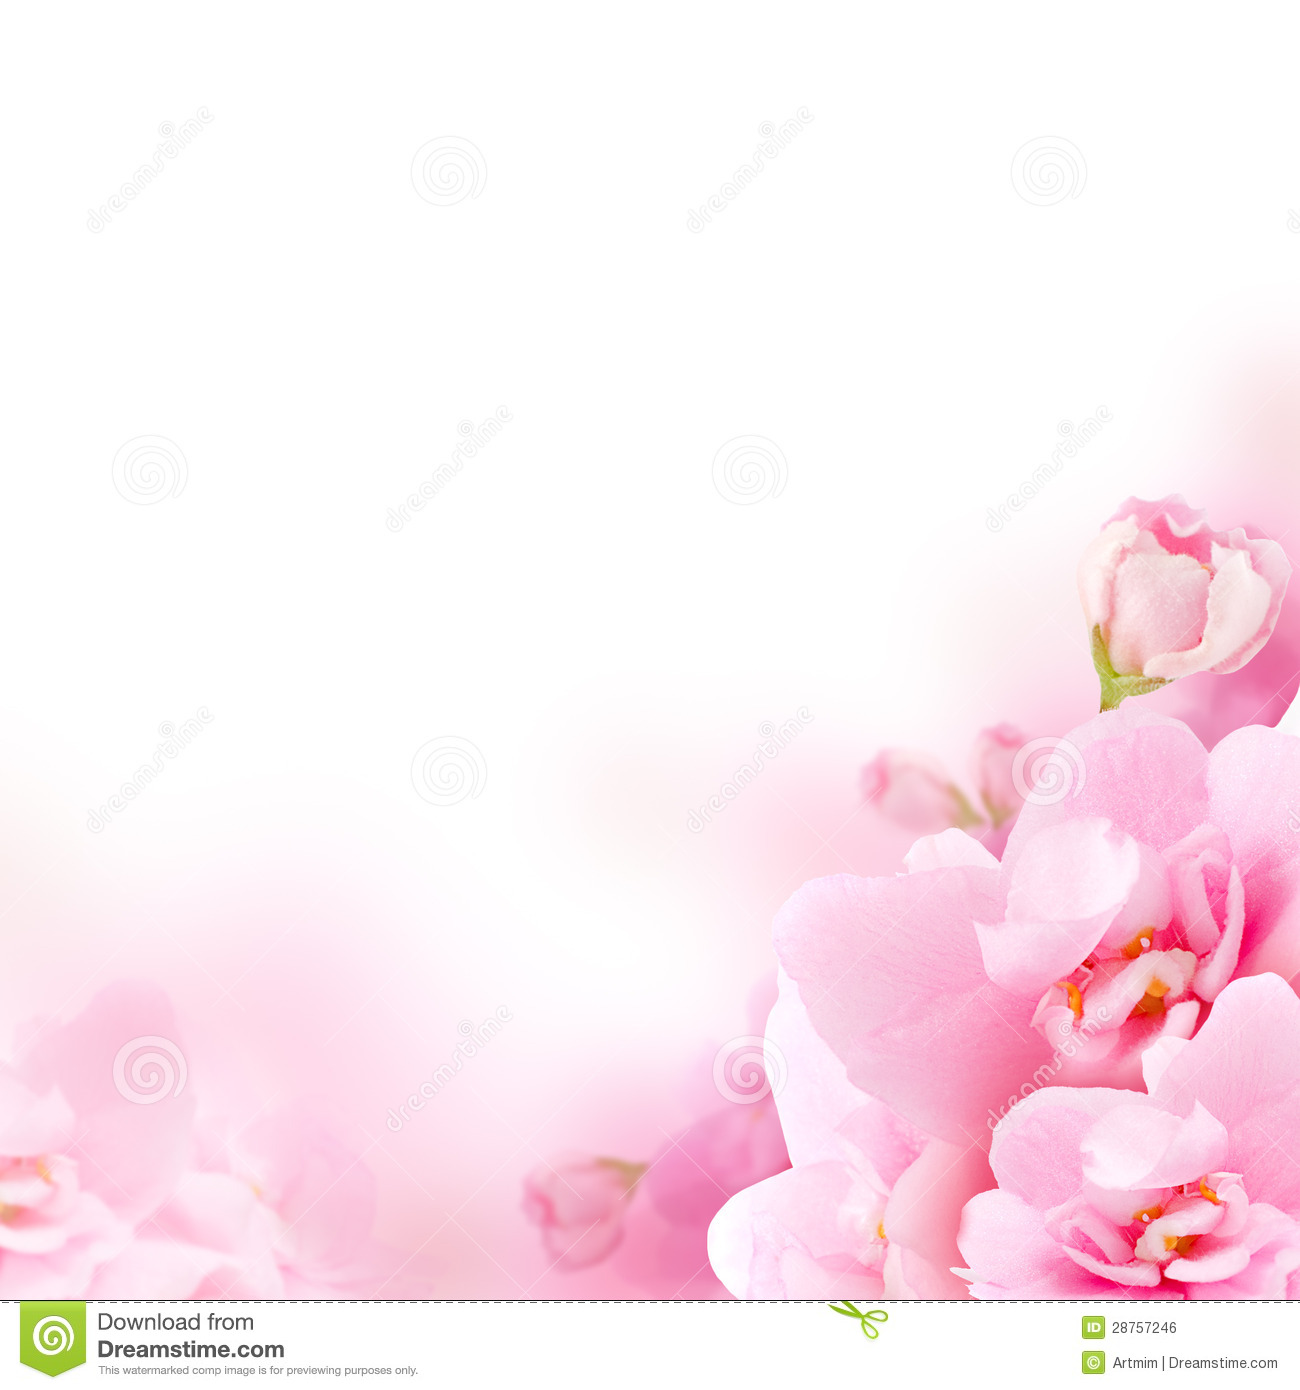 Free background images of flowers png royalty free library Free background images of flowers - ClipartFest png royalty free library